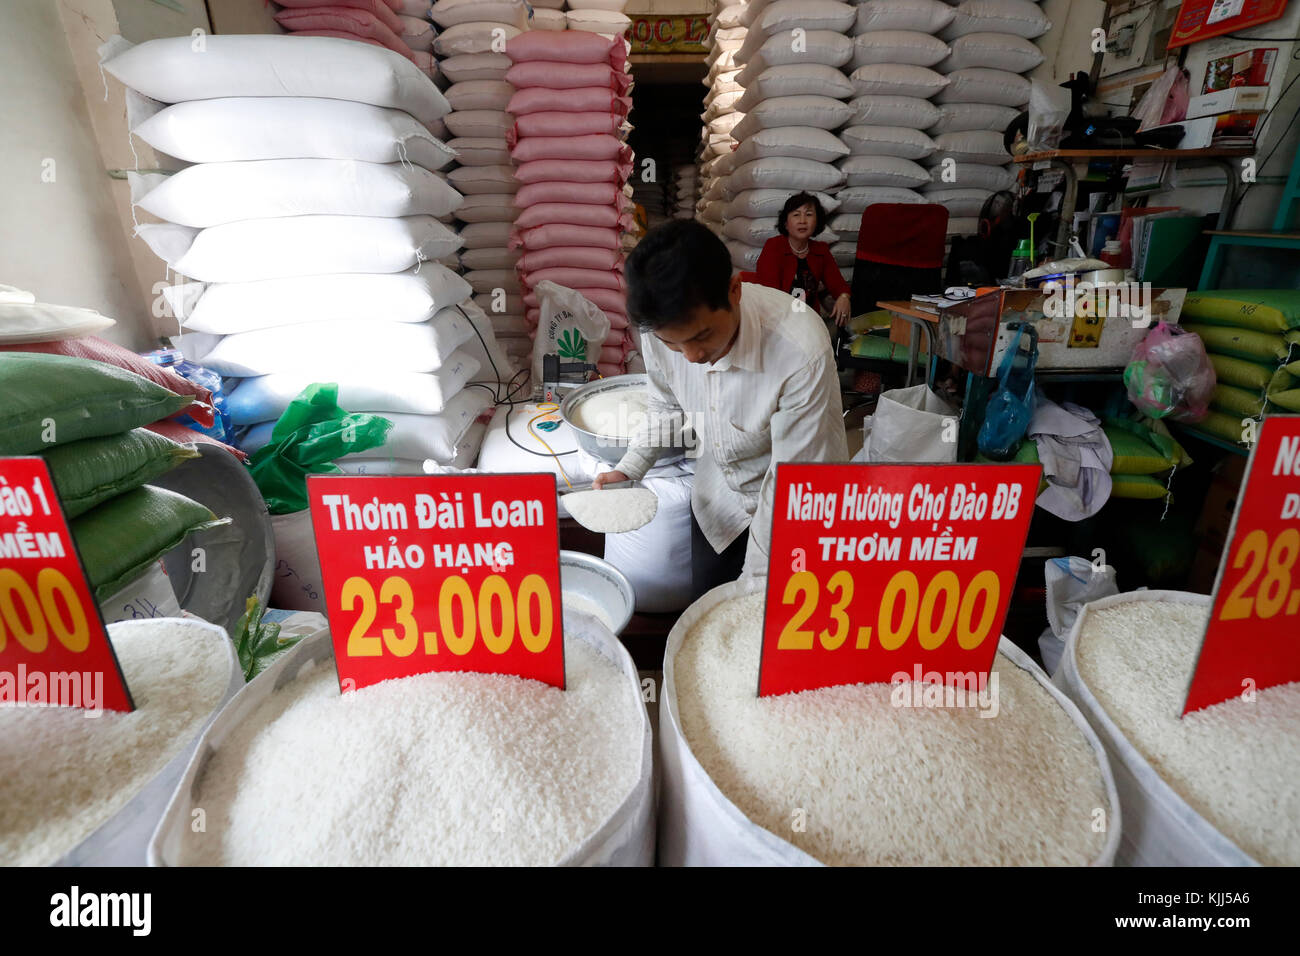 Price of white rice per kilogram in Vietnam Dong. Ho Chi Minh City. Vietnam. Stock Photo